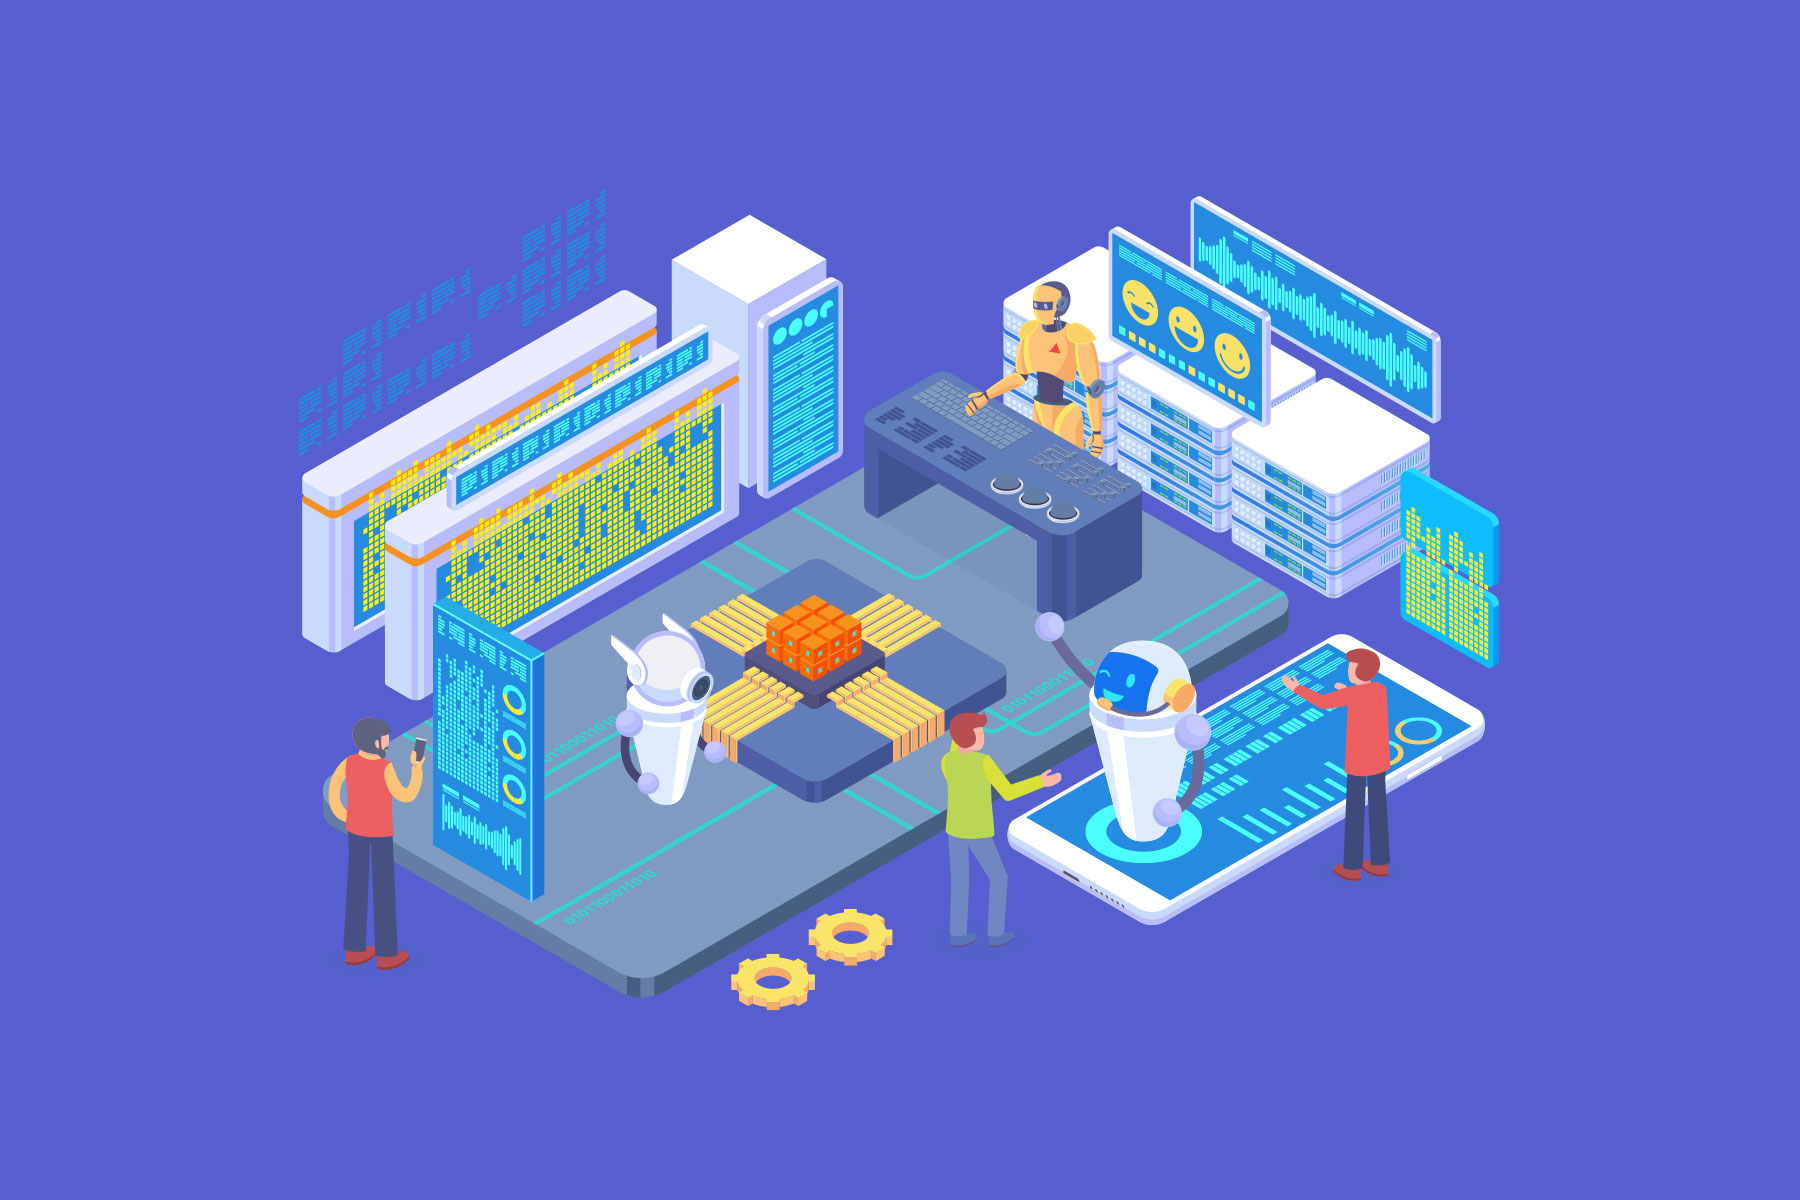 elements-isometric-artificial-intelligence-as-a-service-8K8659N-2019-12-29.jpg